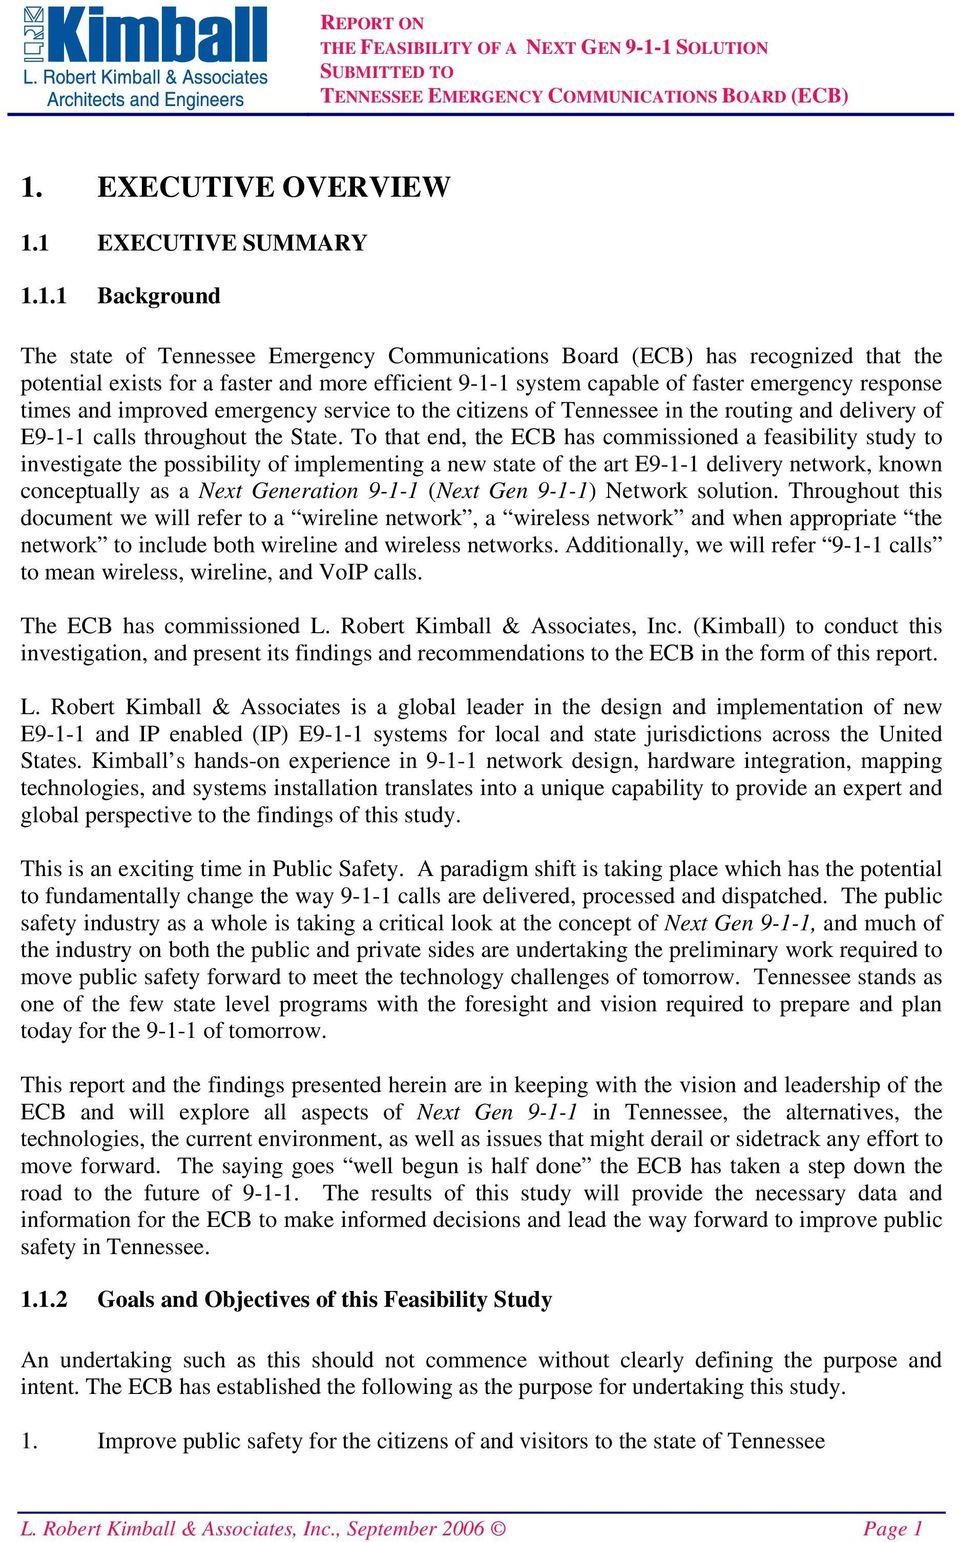 To that end, the ECB has commissioned a feasibility study to investigate the possibility of implementing a new state of the art E9-1-1 delivery network, known conceptually as a Next Generation 9-1-1